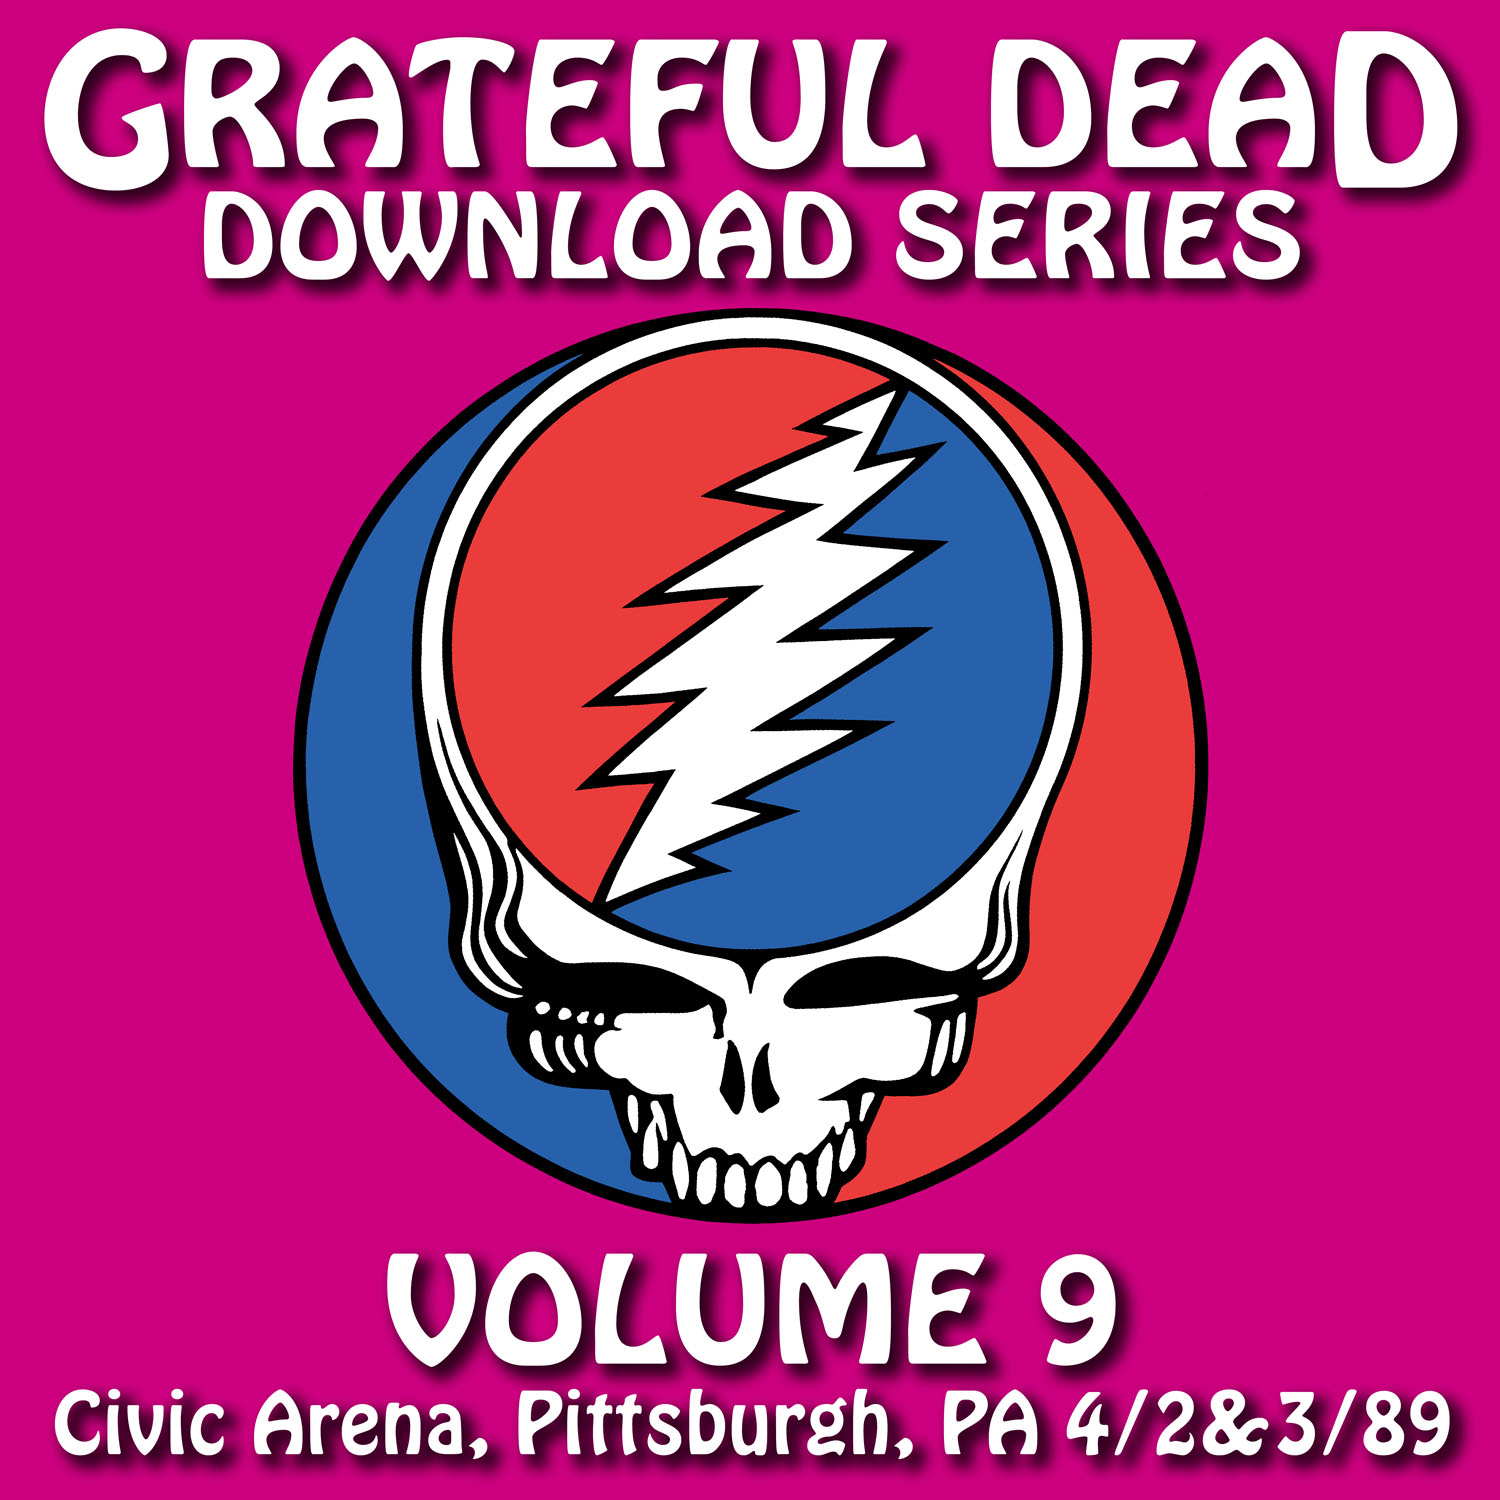 Grateful Dead Download Series 9 album cover artwork